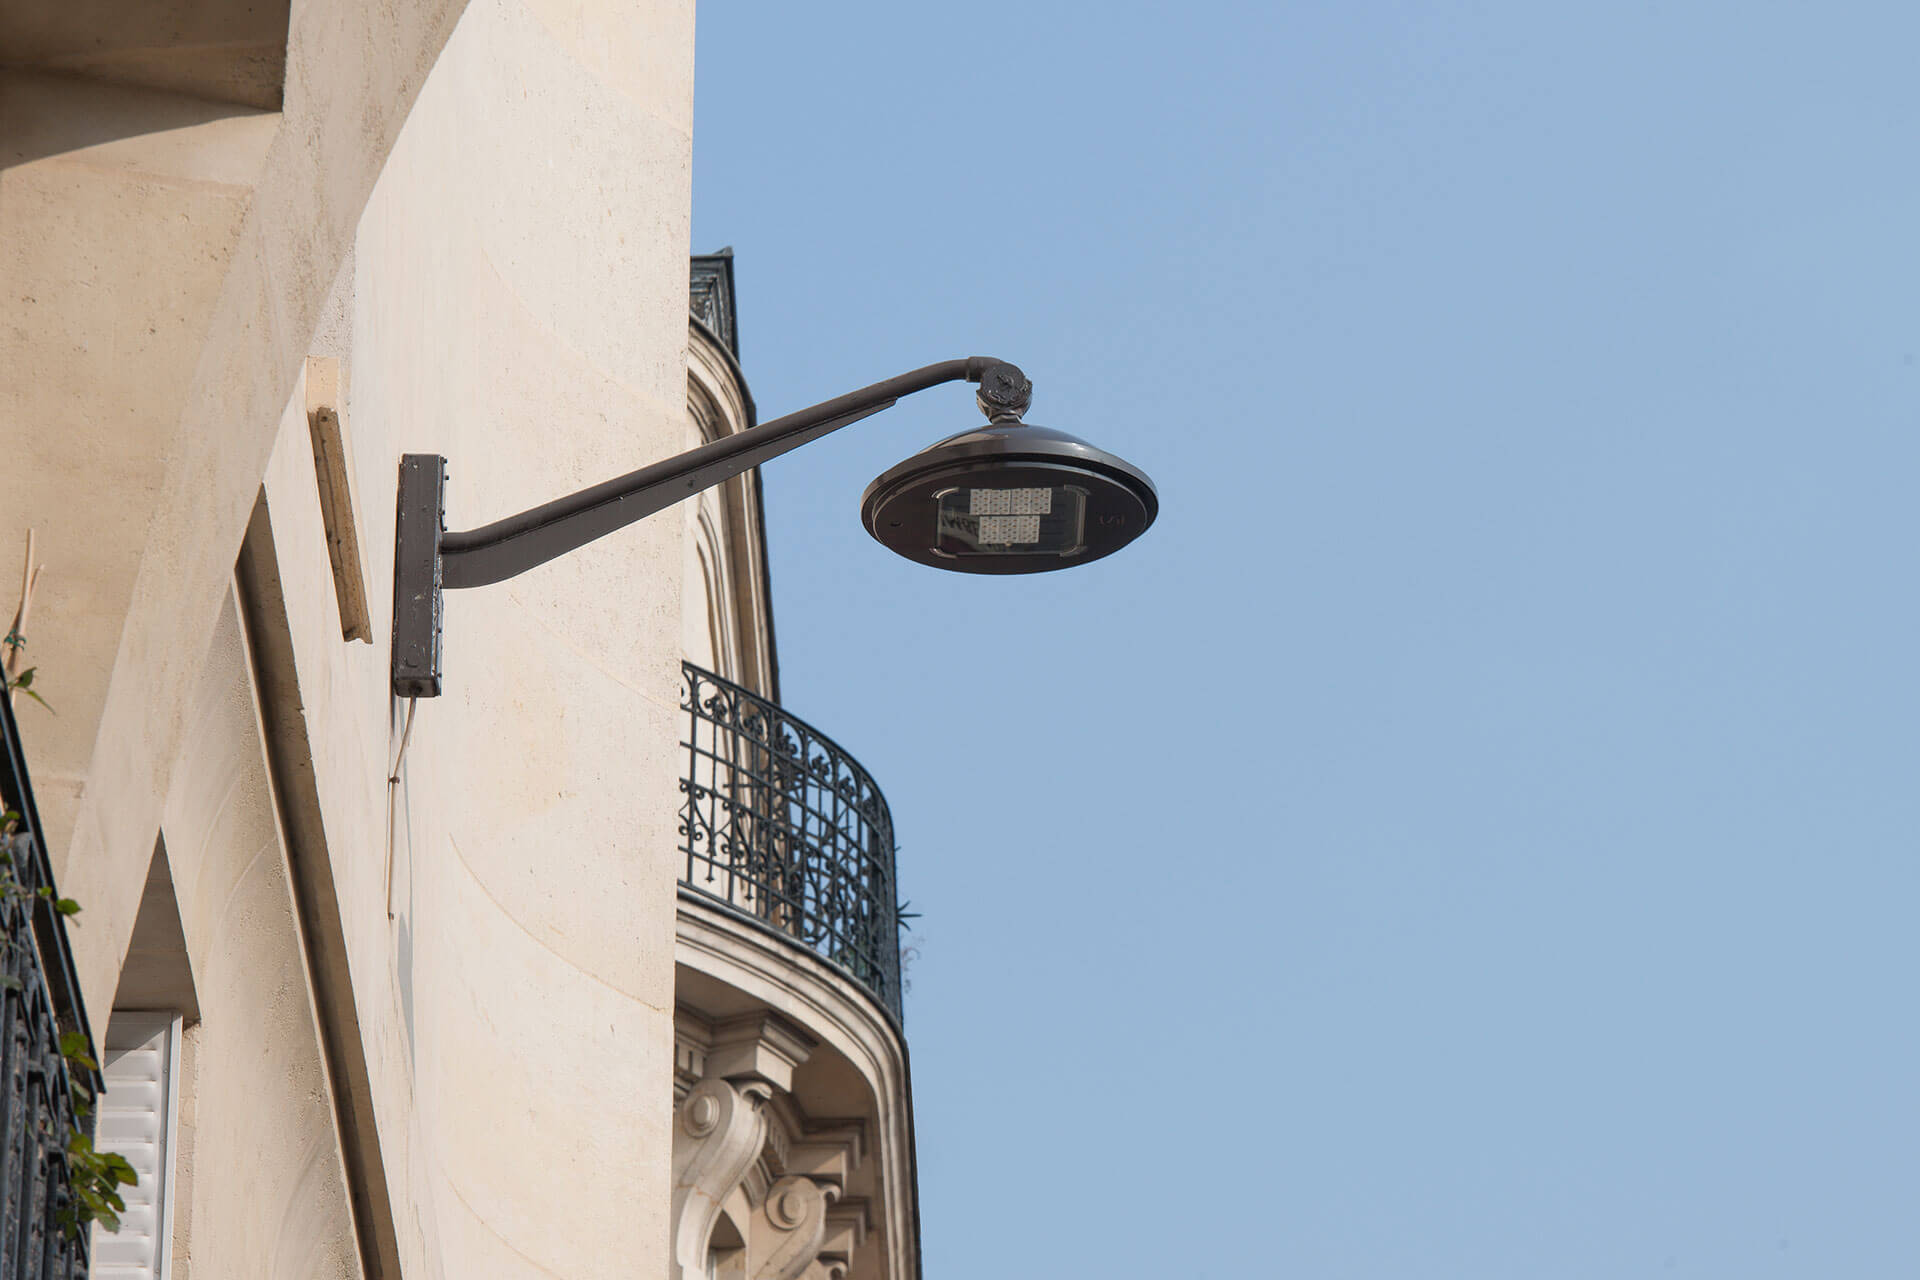 Schréder urban lighting solution enables the city of Paris to ensure its distinctive round luminaires while achieving sustainability goals